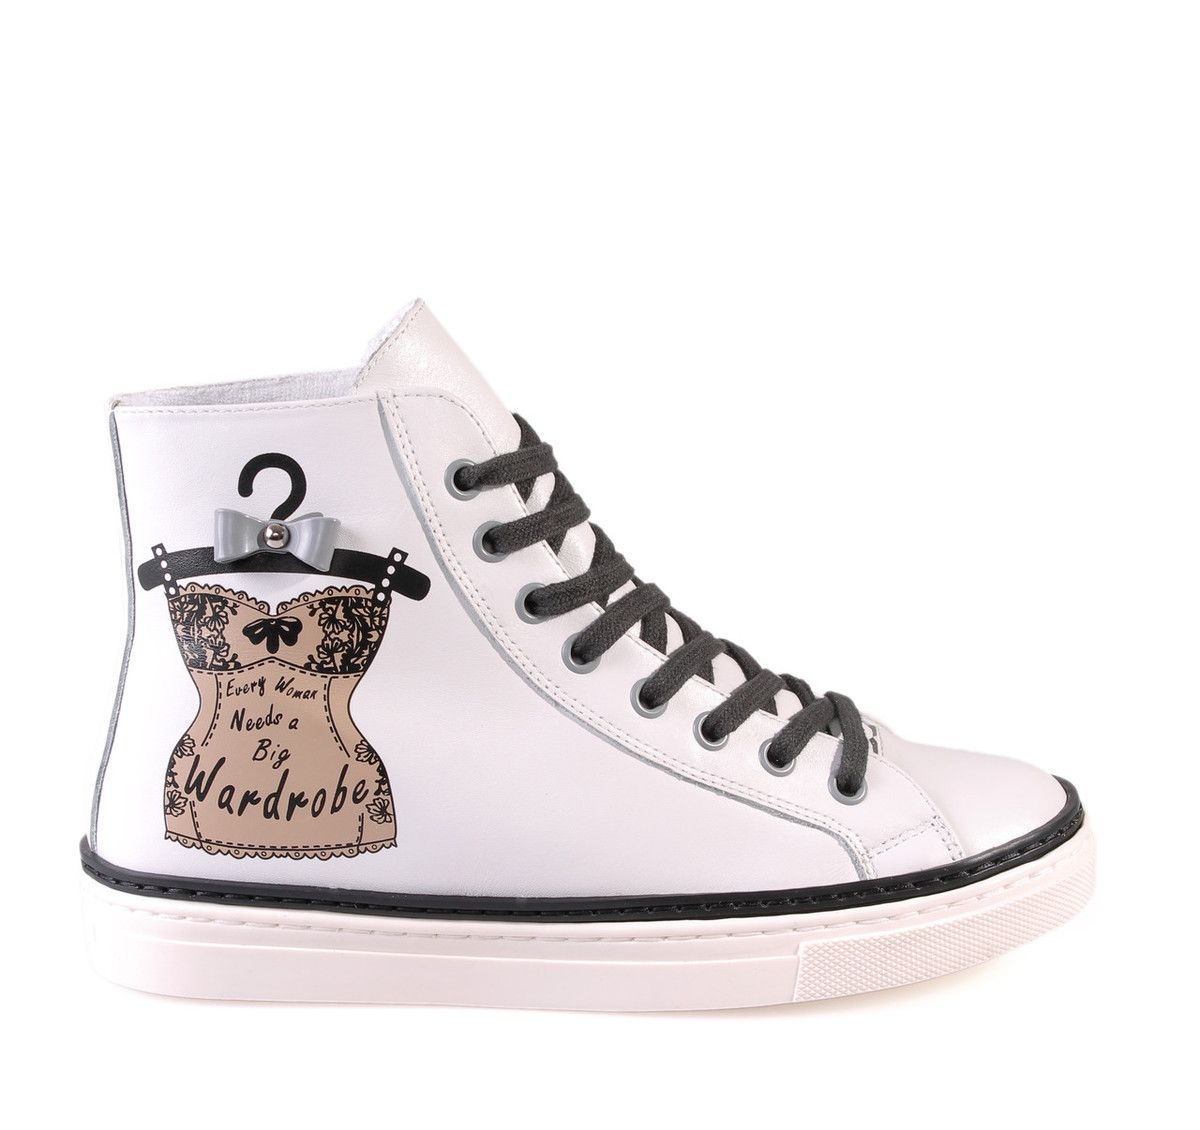 the latest 5e89b b8fca CONVERSE Chuck Taylor Yellow Low-cut Sneakers with Laces (147134C). Κίτρινα  χαμηλά sneakers με κορδόνια.   TEENS in Style   Yellow converse, Chuck  taylor ...